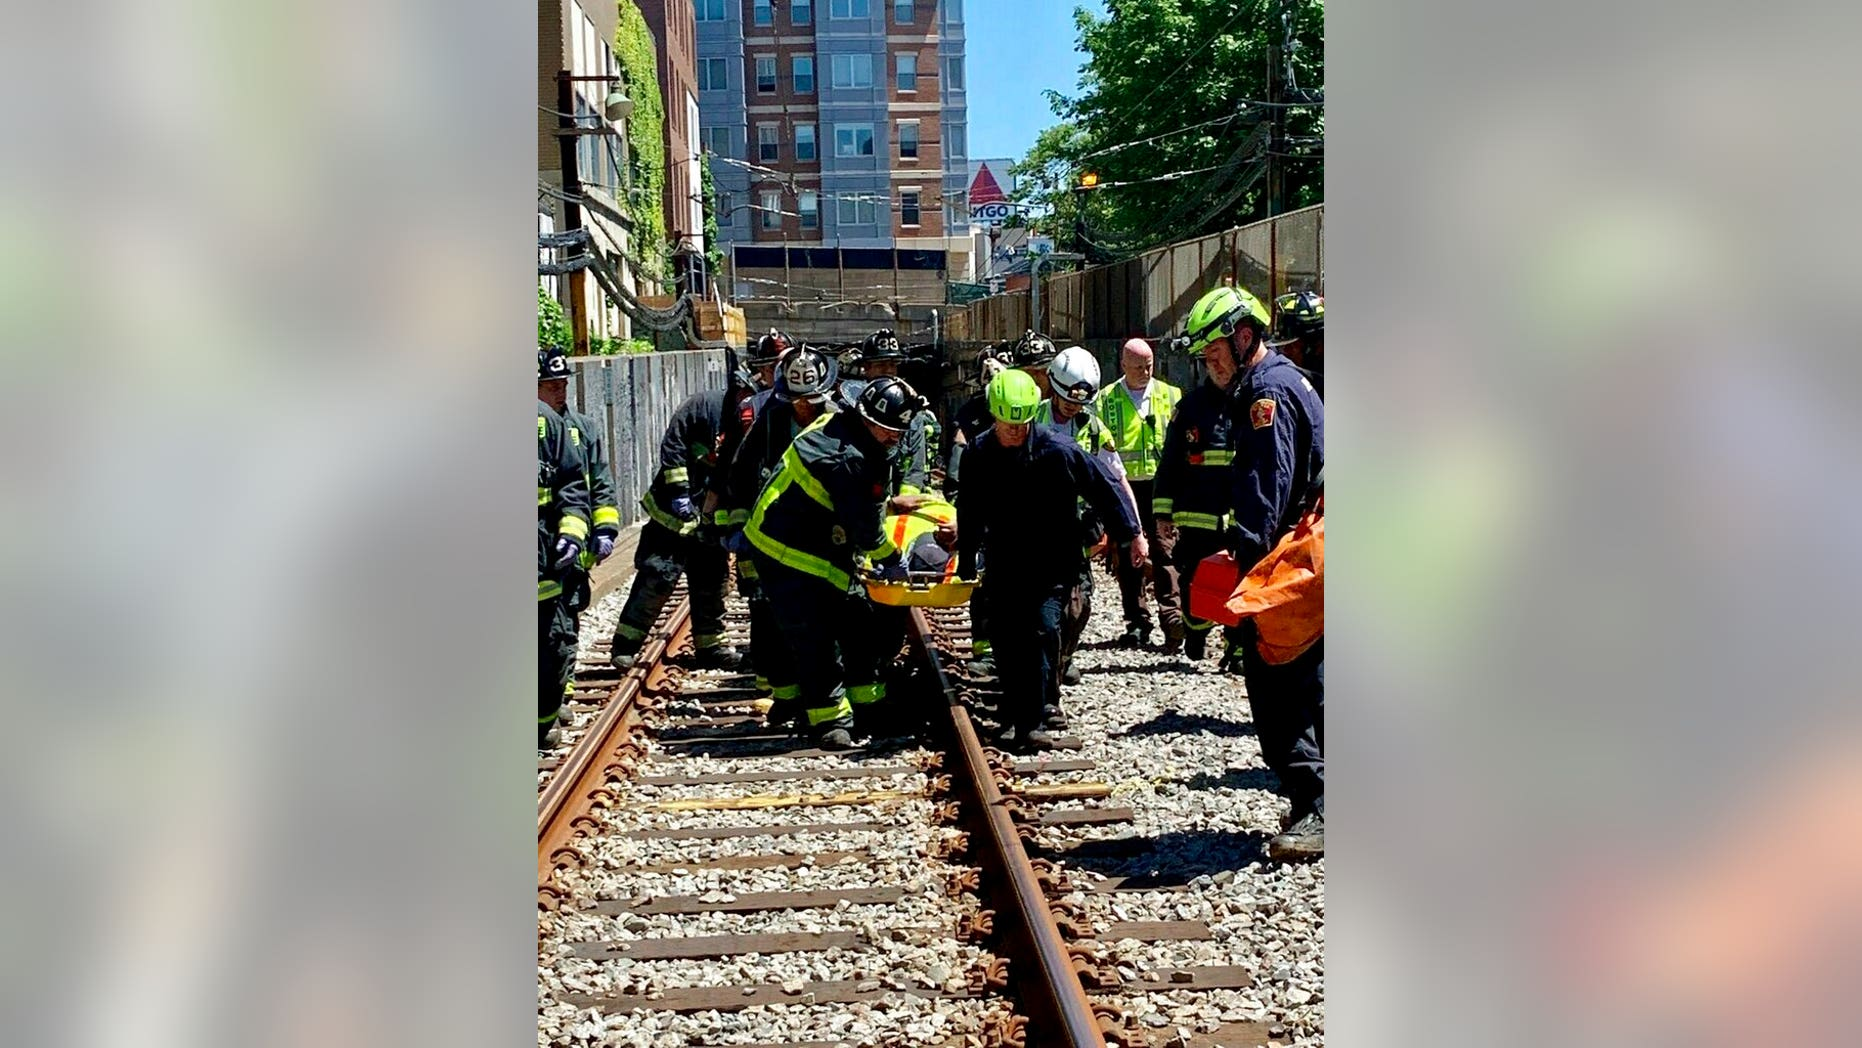 Westlake Legal Group trains Nine hospitalized in Boston subway derailment  fox-news/us/disasters/transportation fox-news/sports/mlb/boston-red-sox fox news fnc/us fnc Barnini Chakraborty article 02ce5519-62f6-520e-af14-f209a75adb00